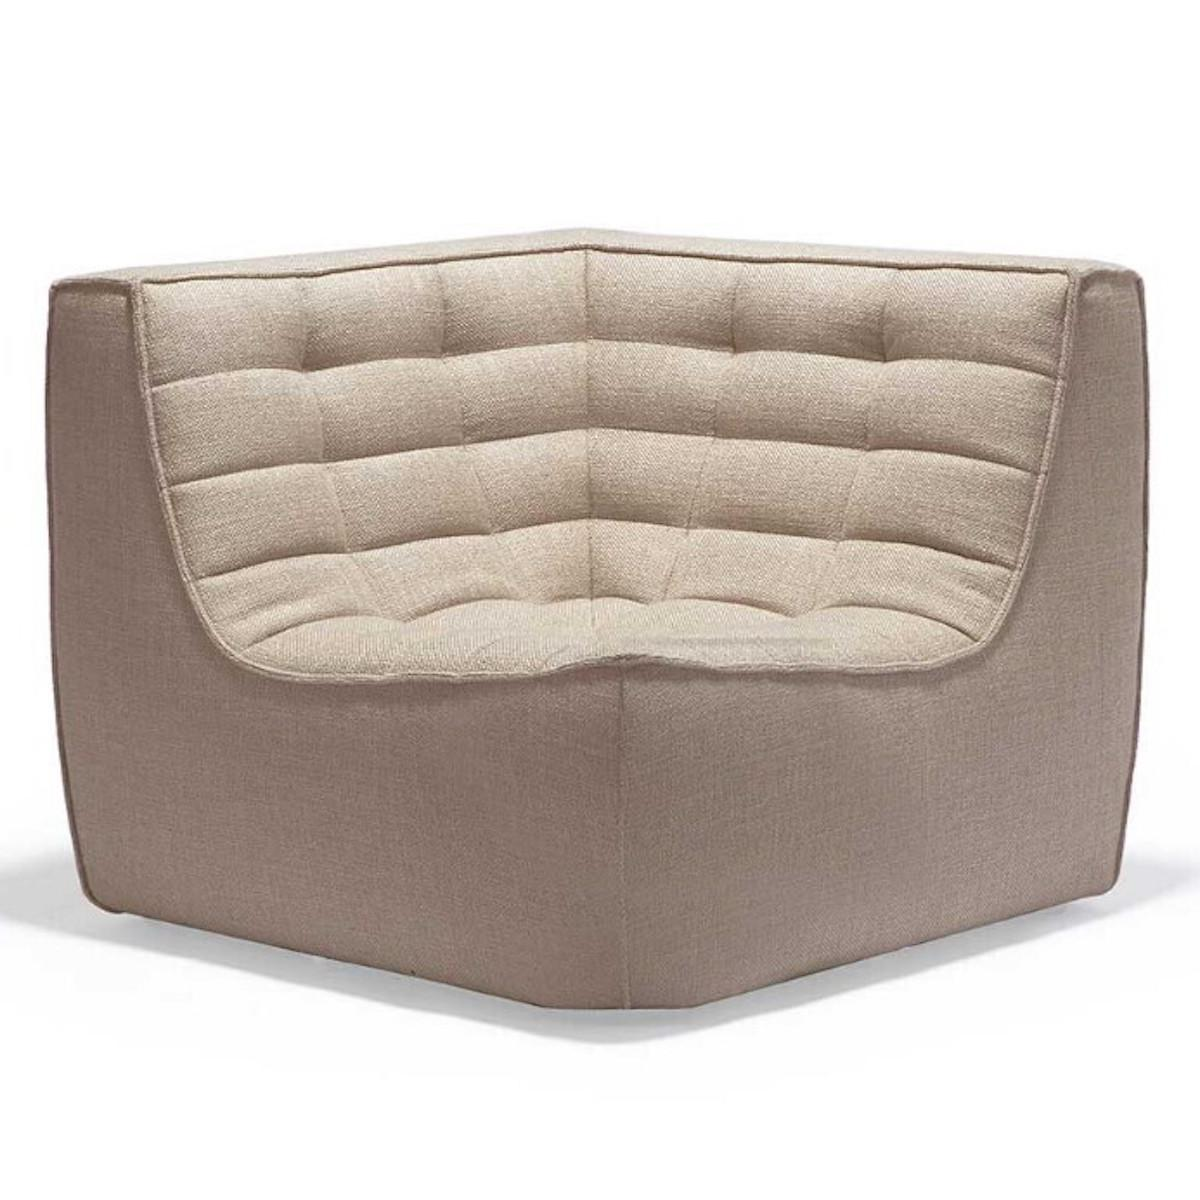 Canapé coin N701 Ethnicraft beige